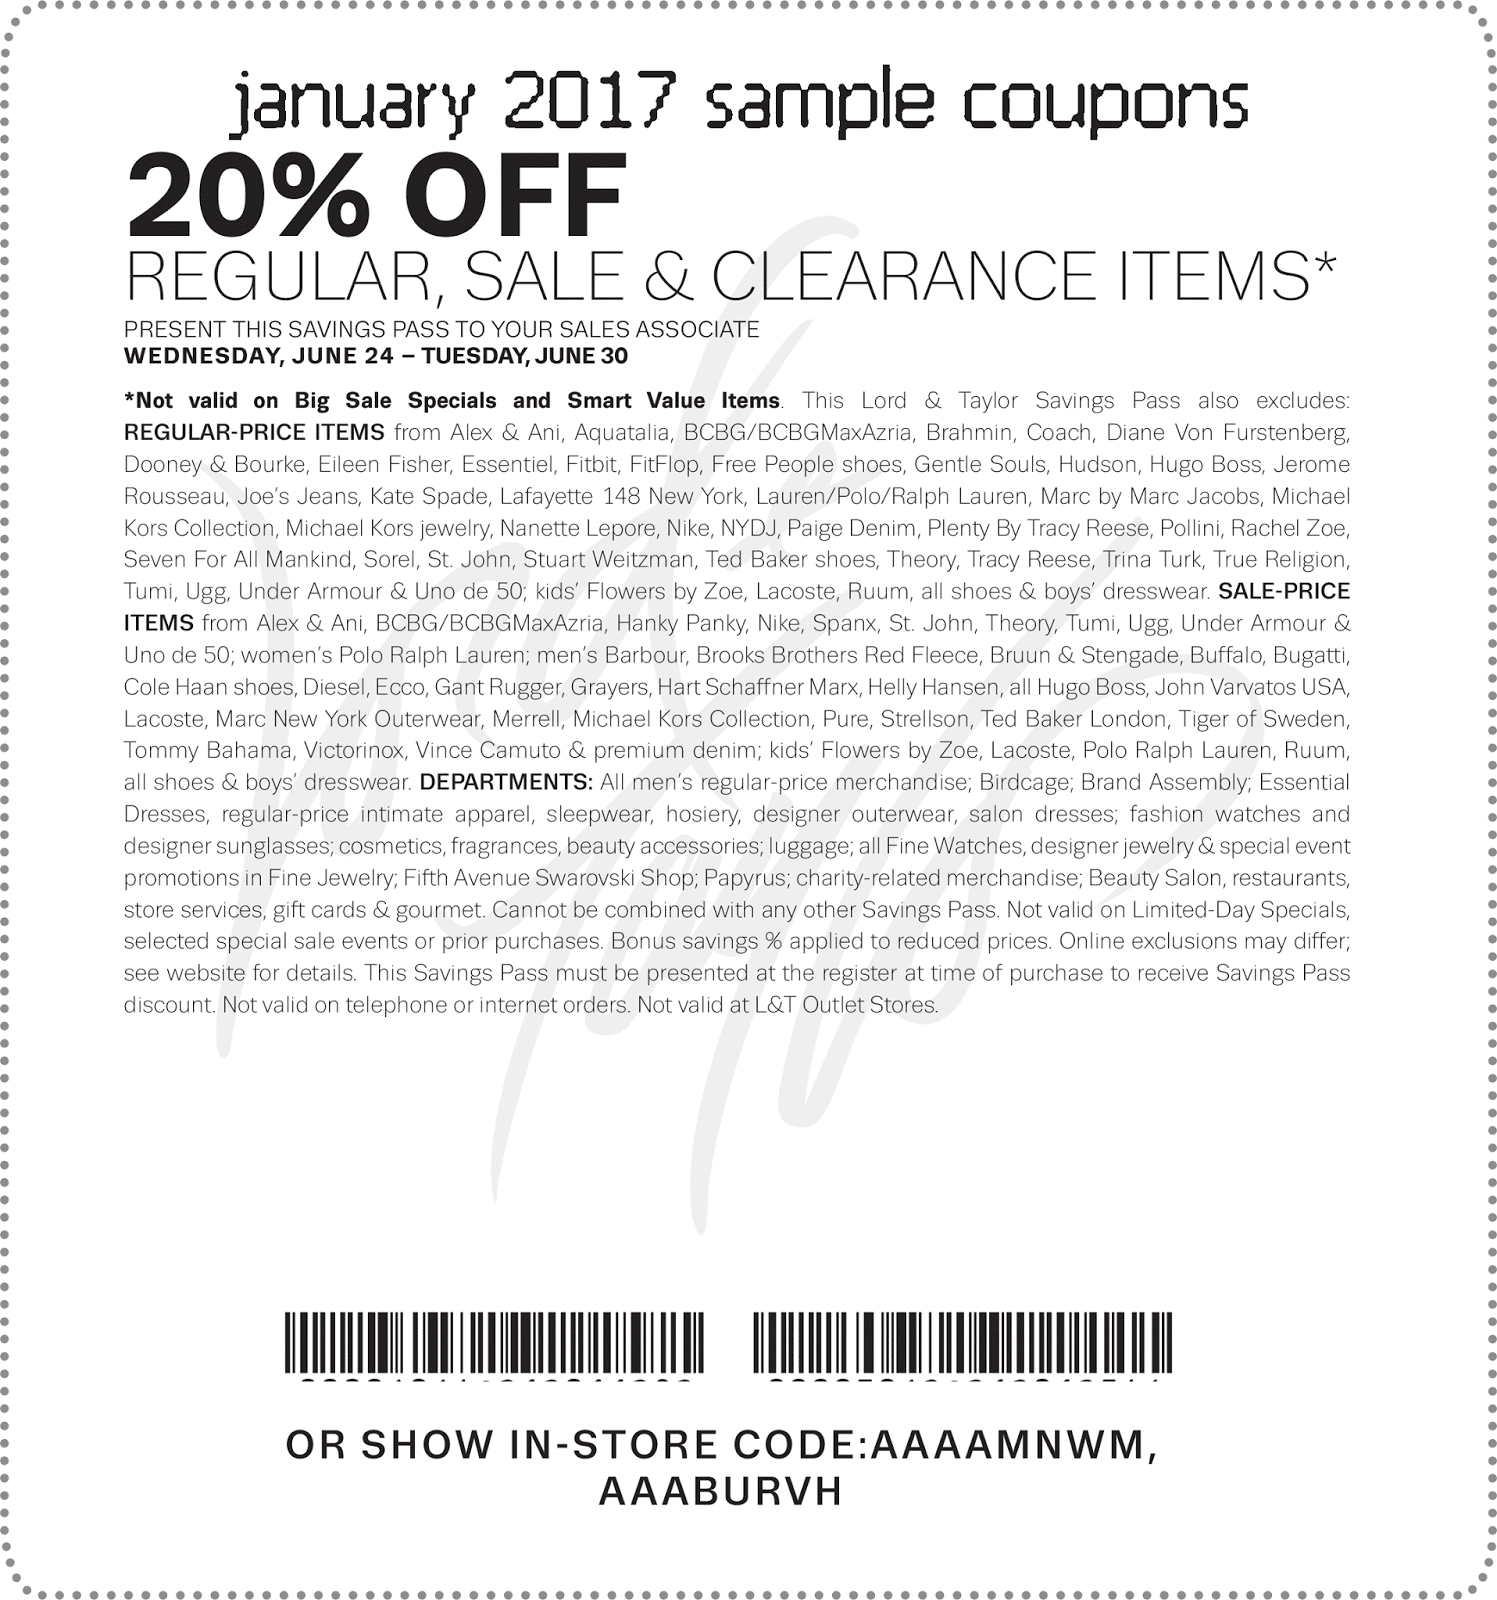 Lord And Taylor Coupons From designer clothes, boots, shoes, handbags, jewelry to beauty supplies for men, women and kids, you can find everything here at Lord And Taylor. This online store often runs a promotion that offers customers up to 25% Off and more.